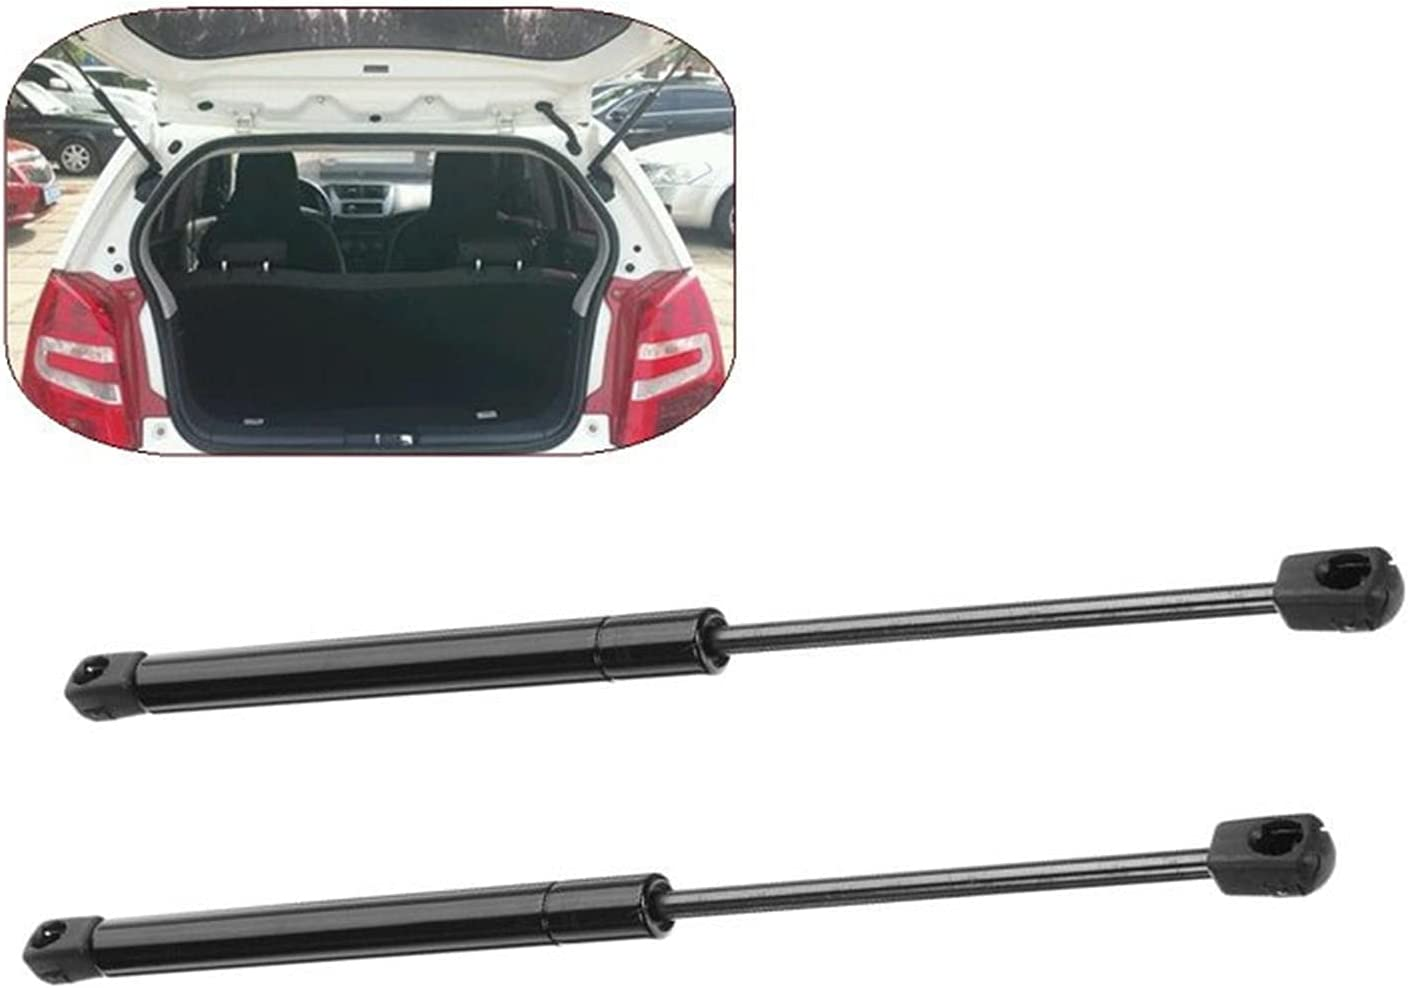 ZLLD Lift Cheap mail order shopping Support Struts Strongly Supported Car Trunk Jacksonville Mall Rear Tailg